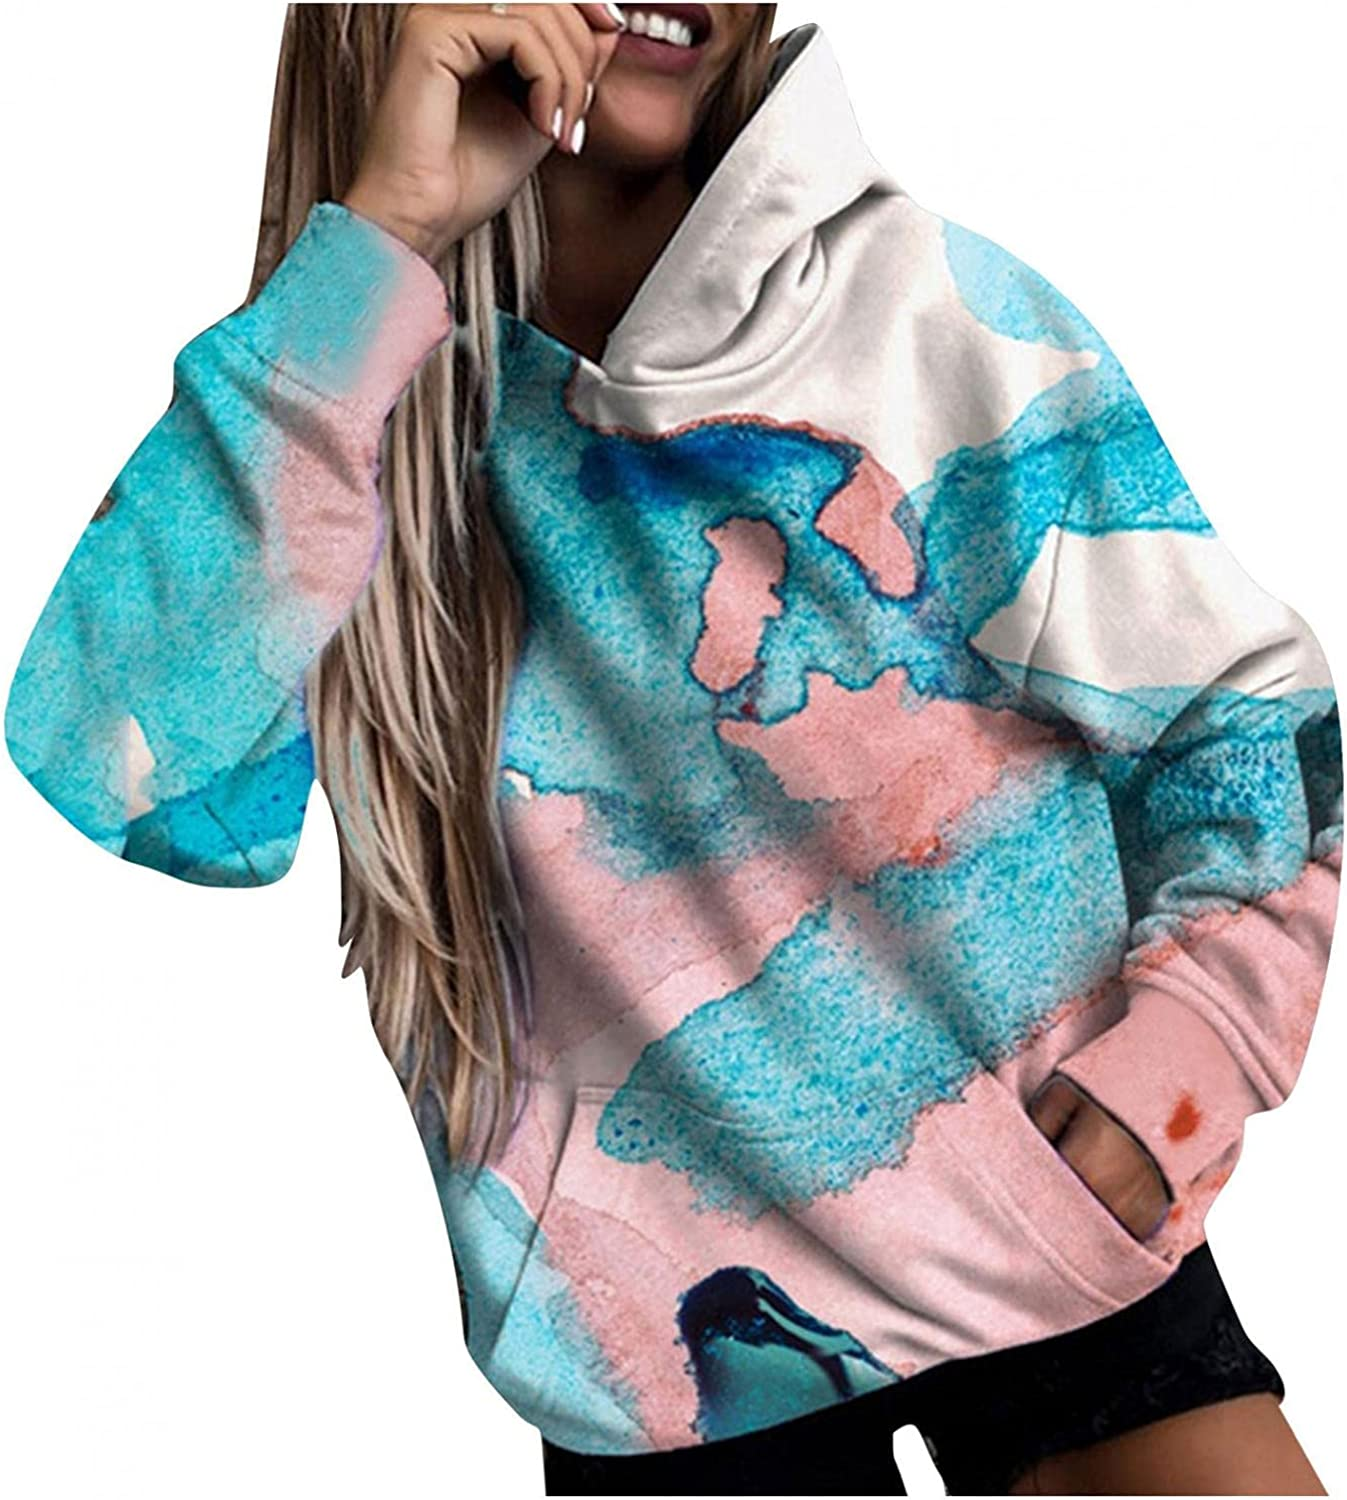 felwors Hoodies for Women, Womens Long Sleeve Hoodie Sweatshirts Casual Tunic Tops Floral Print Shirts with Pockets